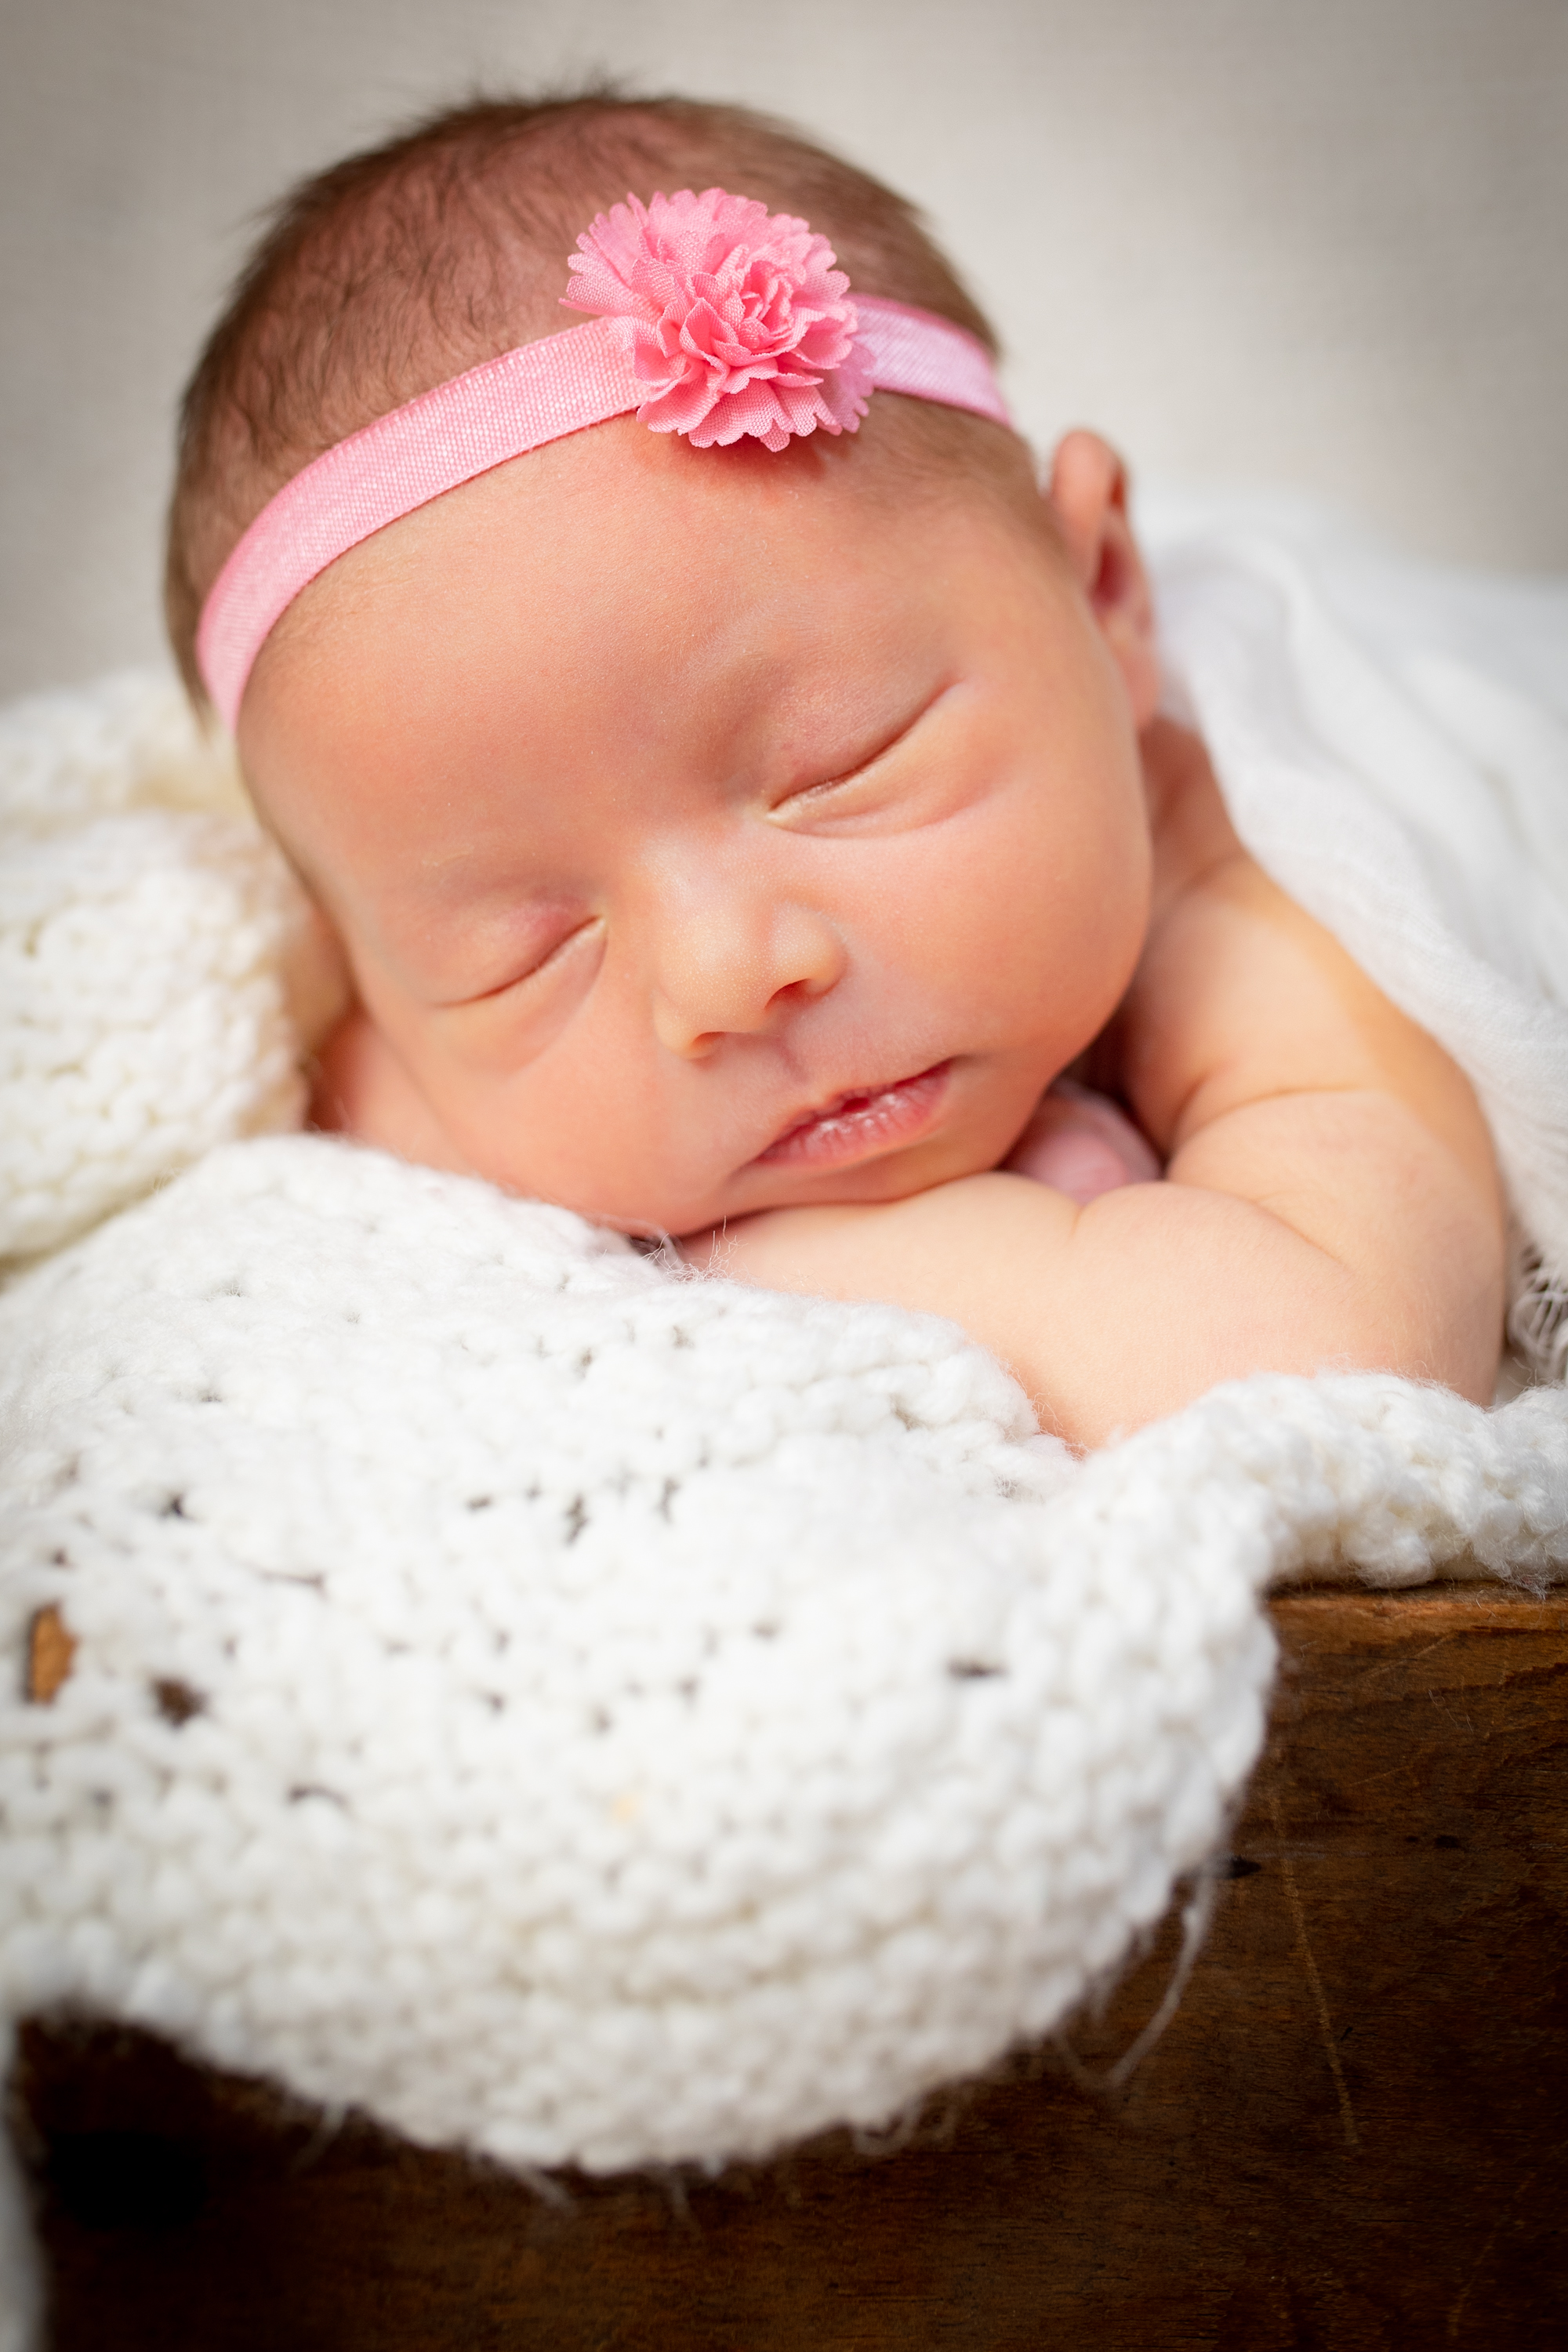 Newborn-London-Jodie-Aldred-Photography-Chatham-Middlesex-Lambton-Baby-girl-family-parents-ontario.jpg